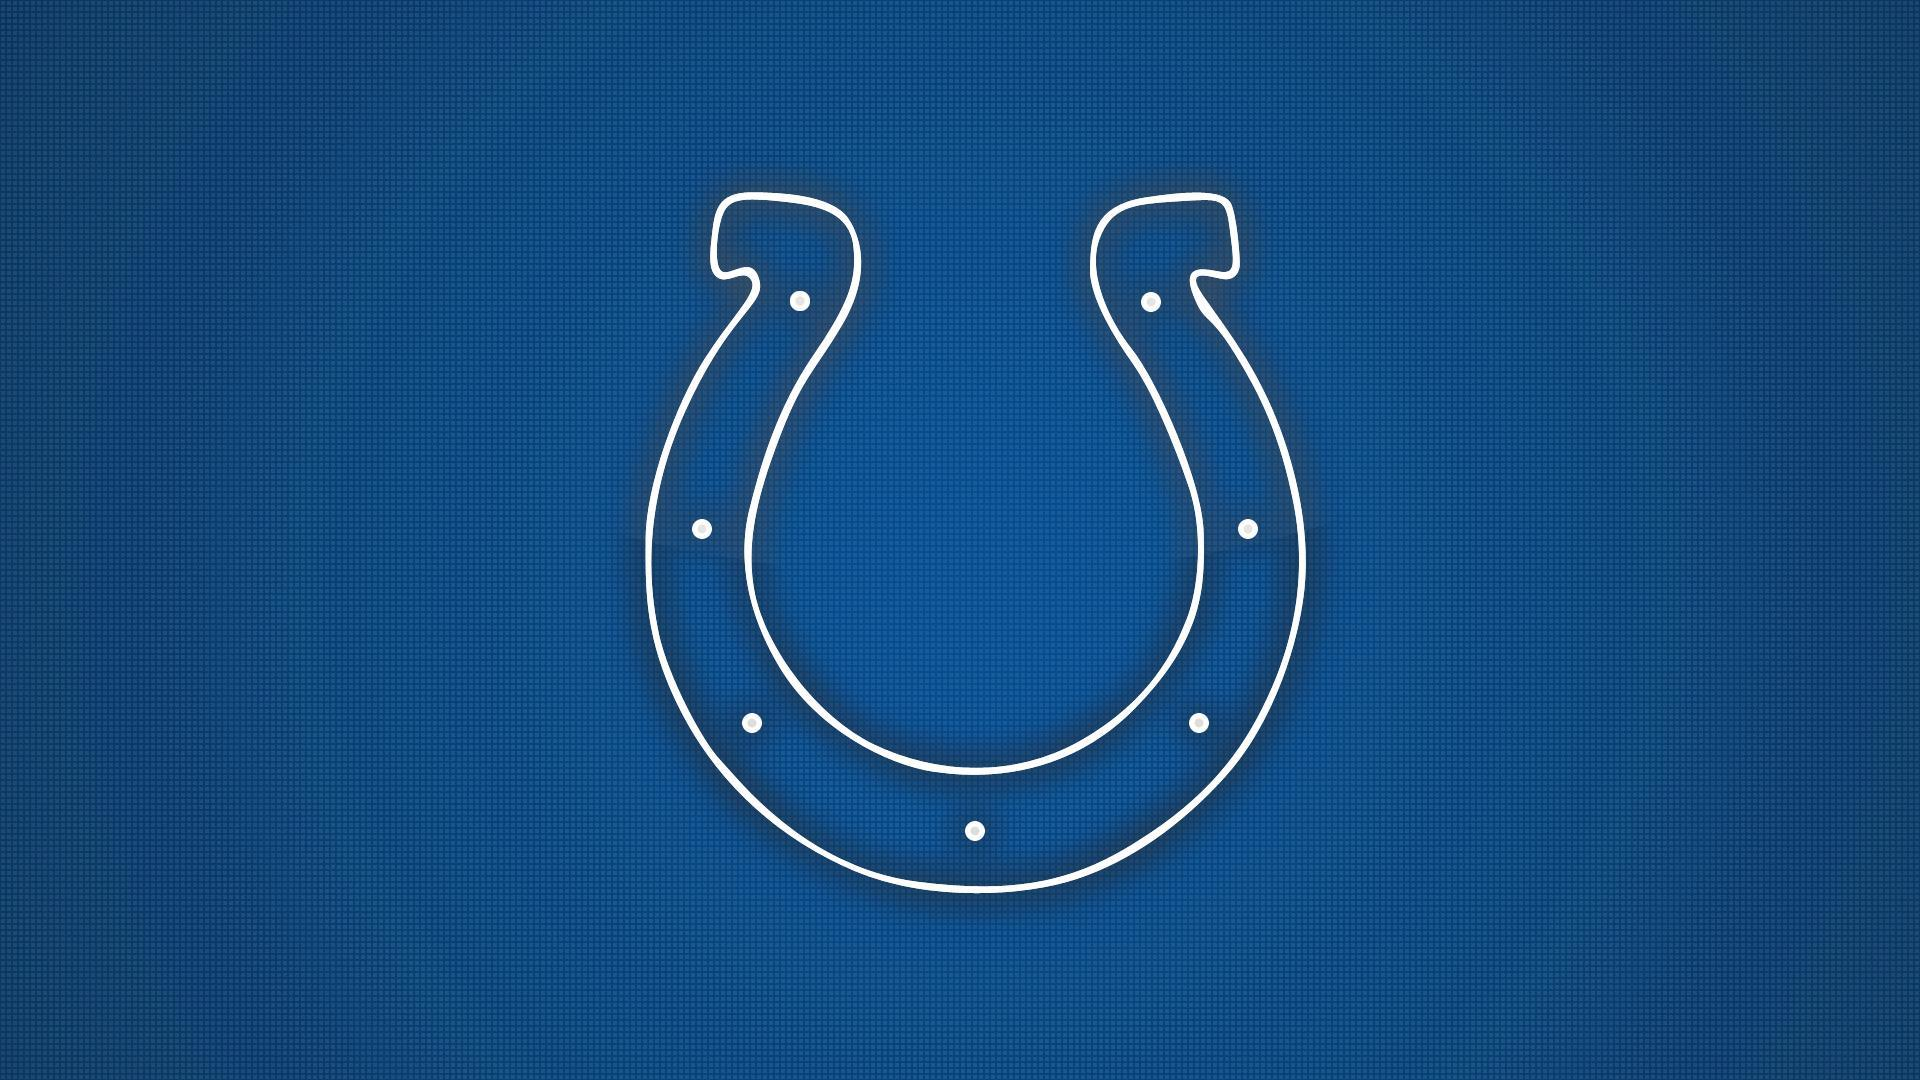 Indianapolis Colts Wallpaper 5 - 1920 X 1200 | stmed.net